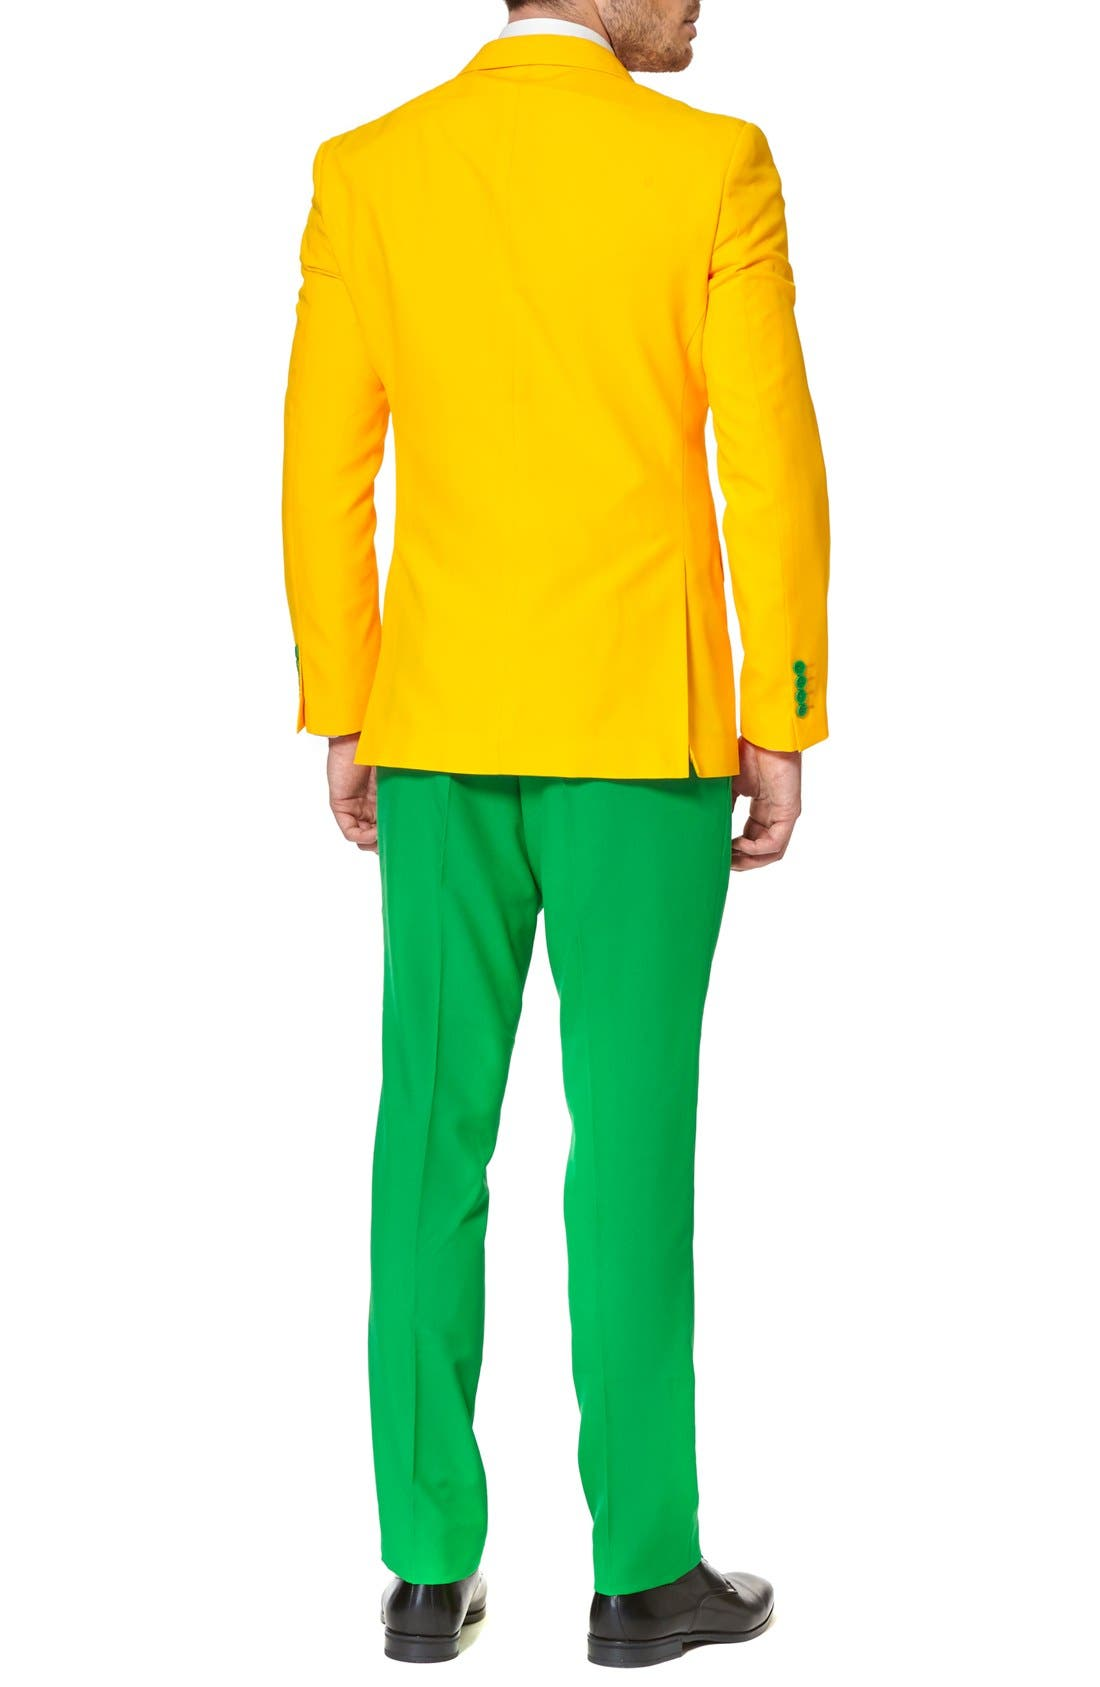 Alternate Image 2  - OppoSuits 'Green & Gold' Trim Fit Suit with Tie